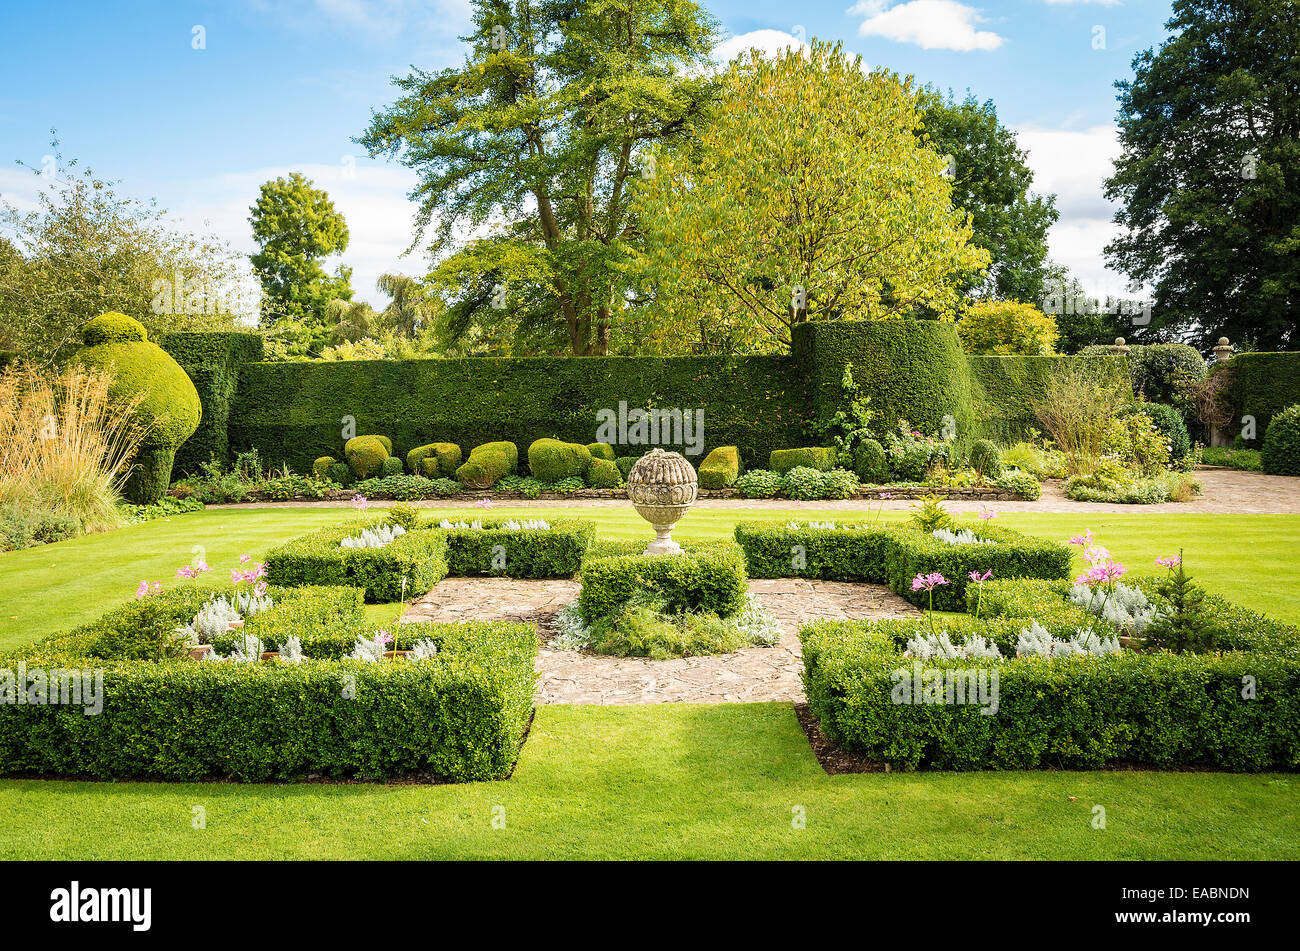 Symmetrical borders and topiary in The Courts garden in UK - Stock Image